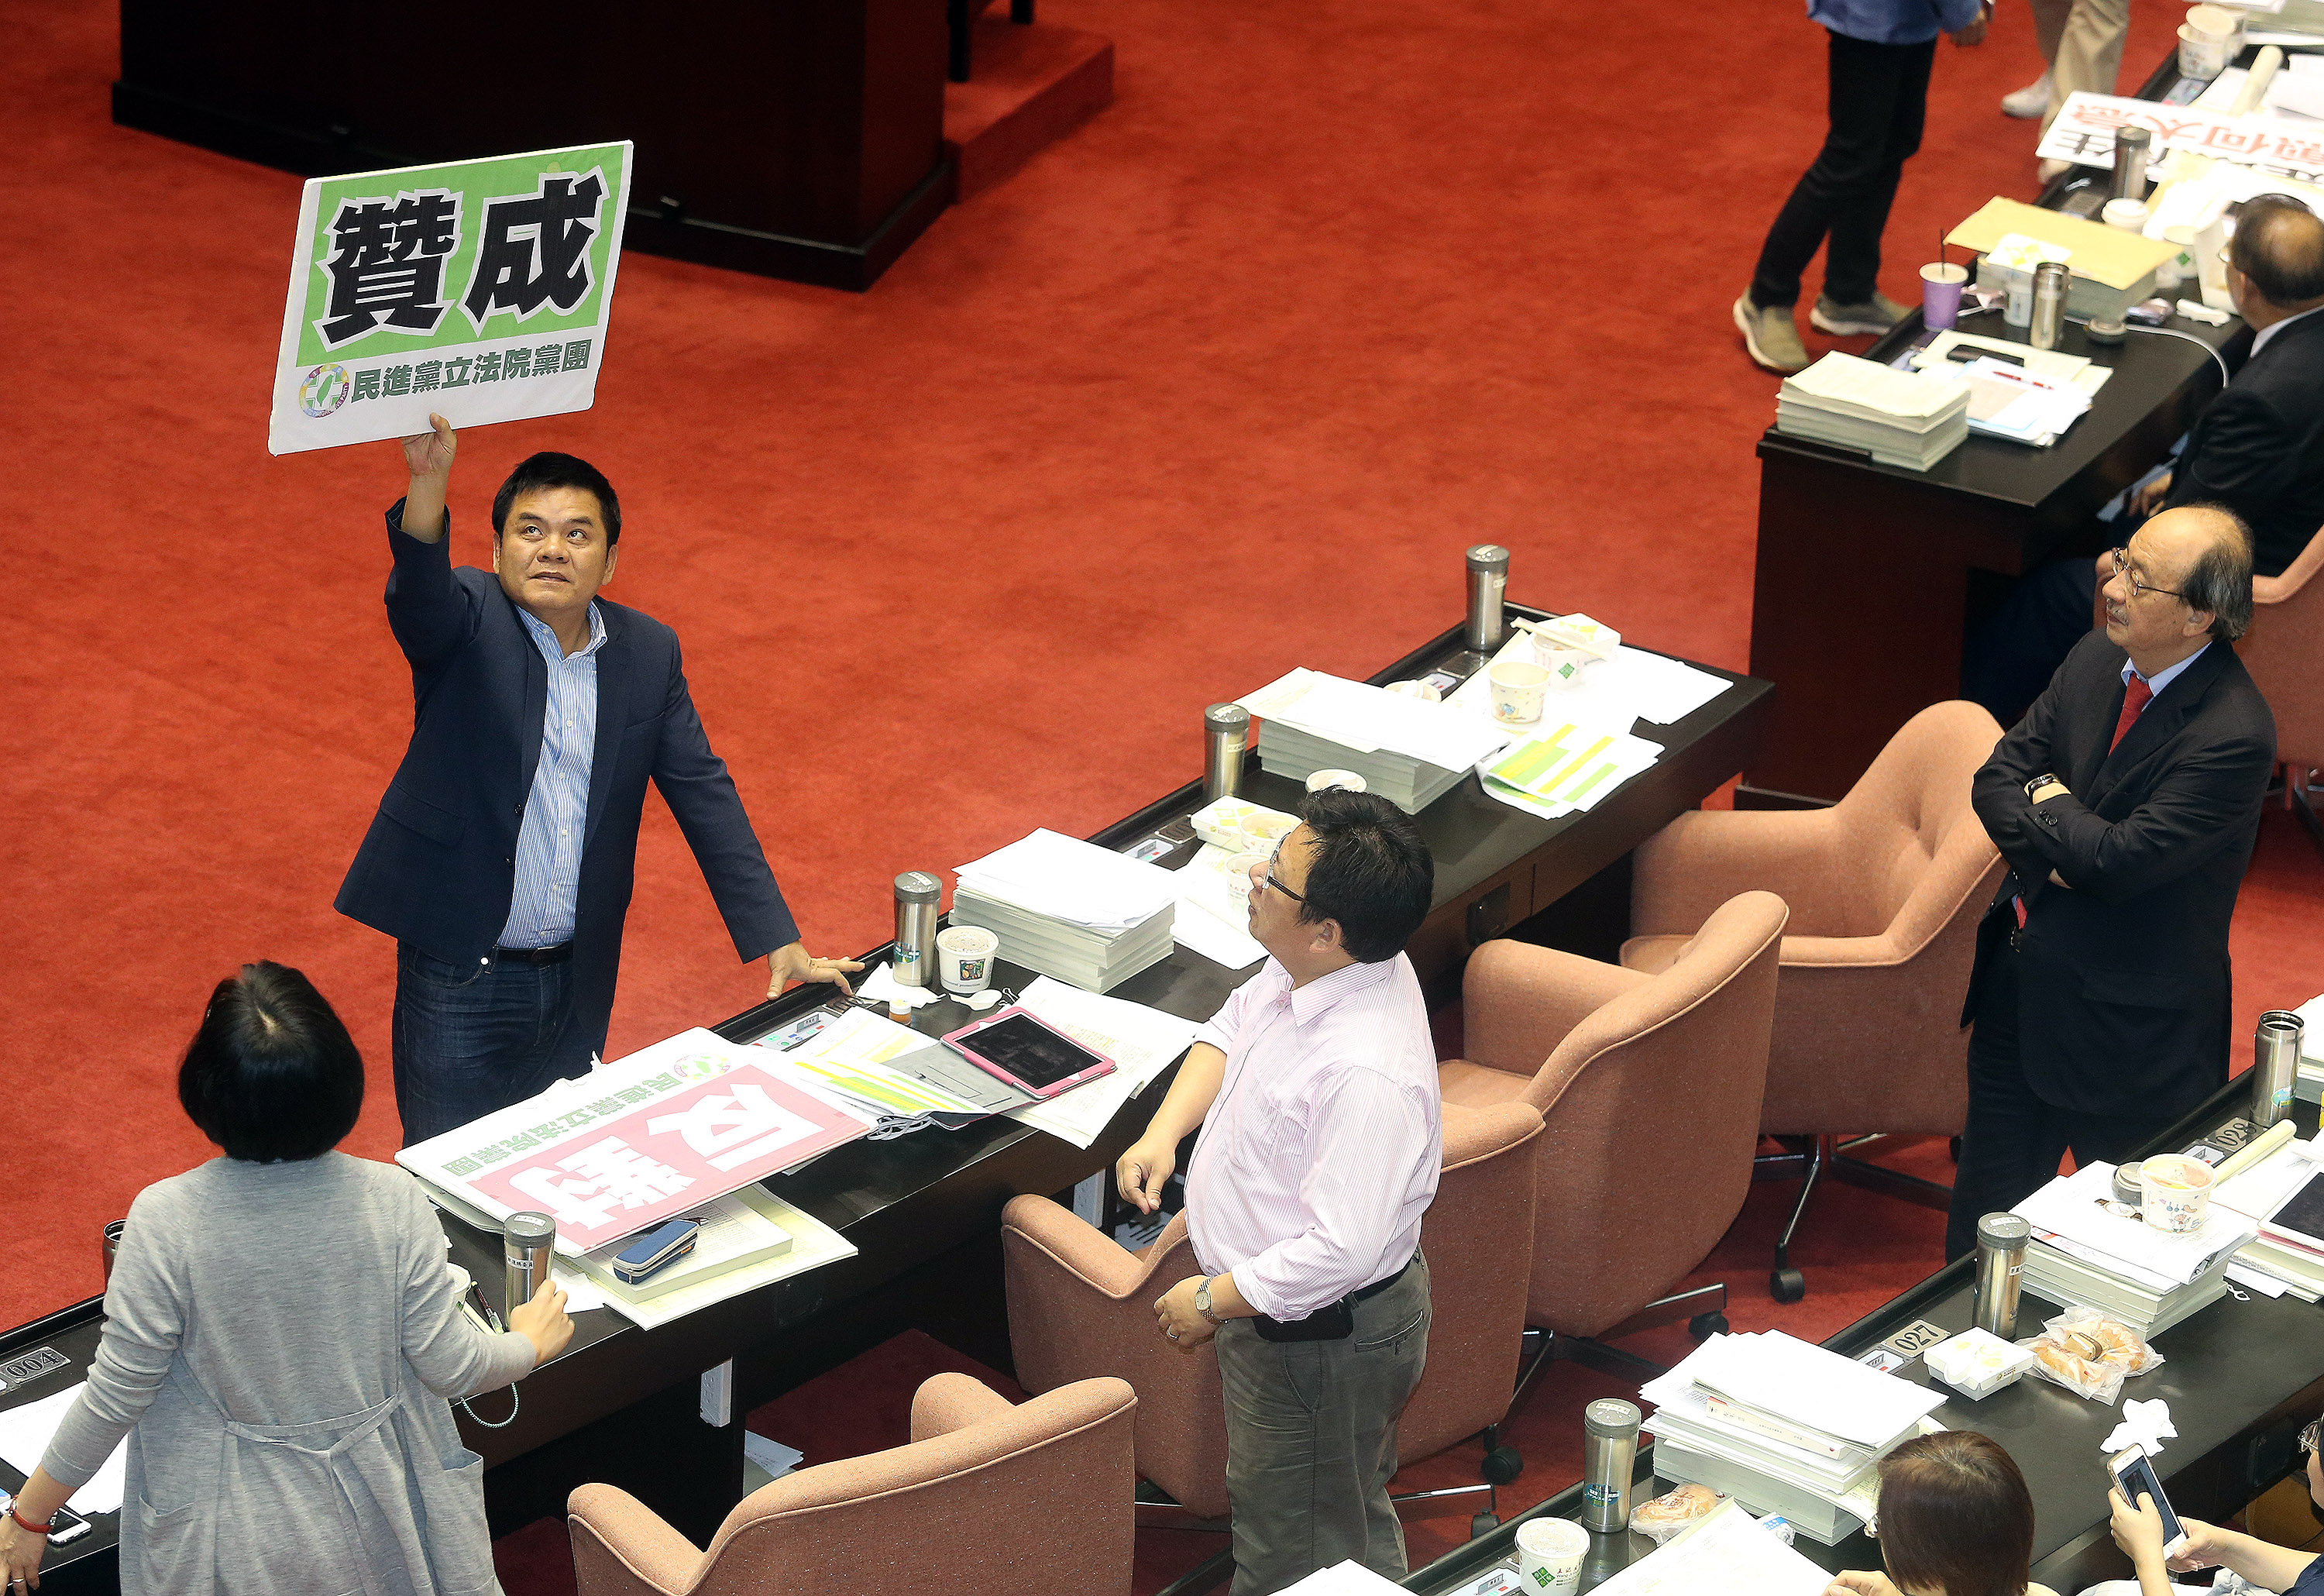 A DPP lawmaker shows his support for doing away with the 18-percent rate.